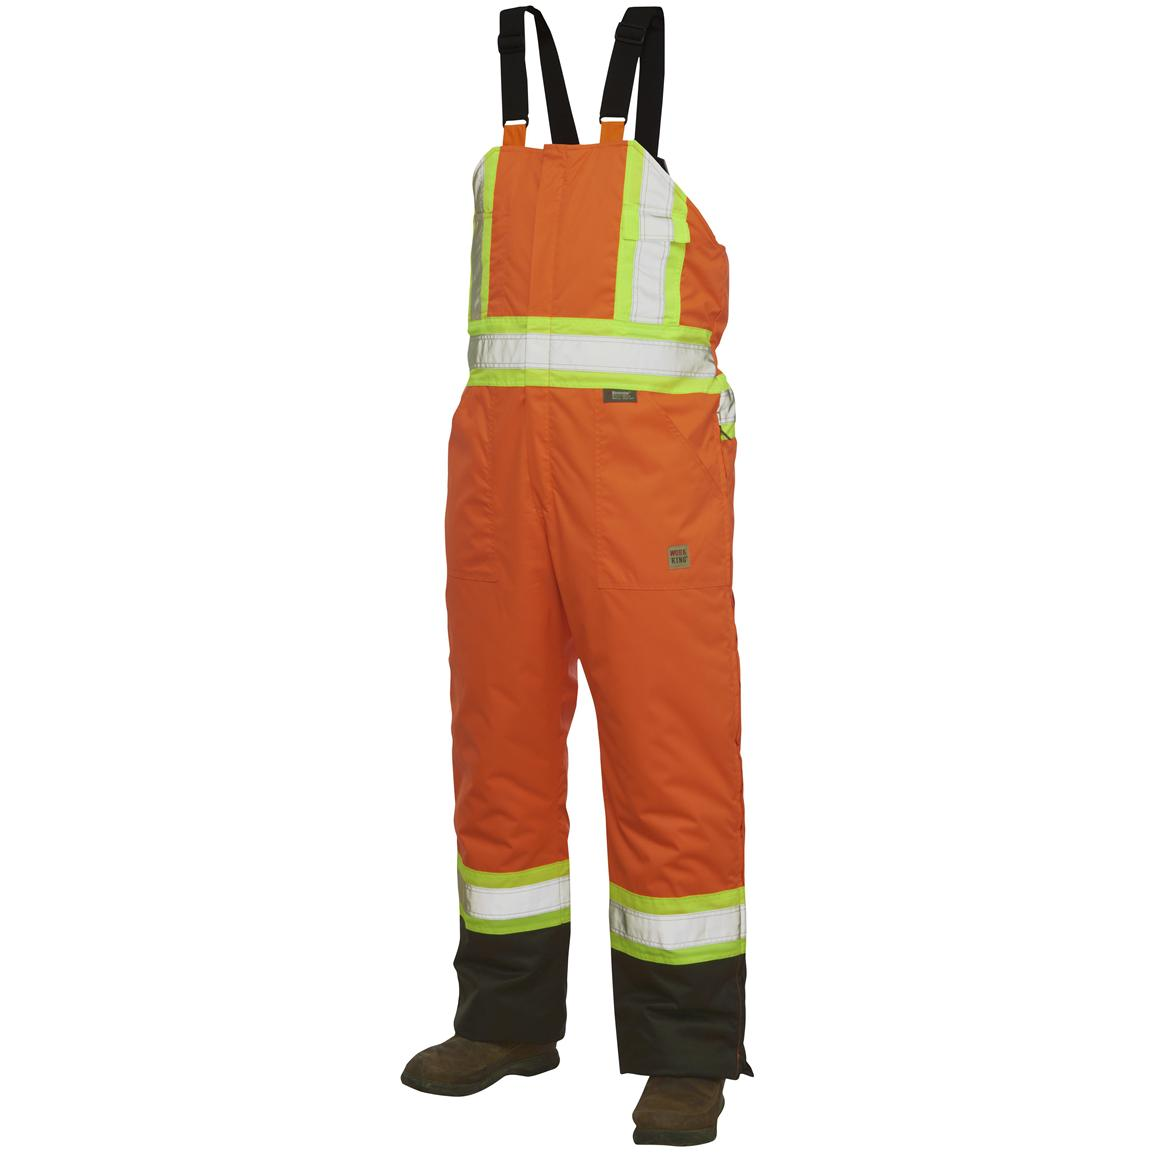 Work King Safety Hi-Vis Insulated Bib Overalls, Fluorescent Orange